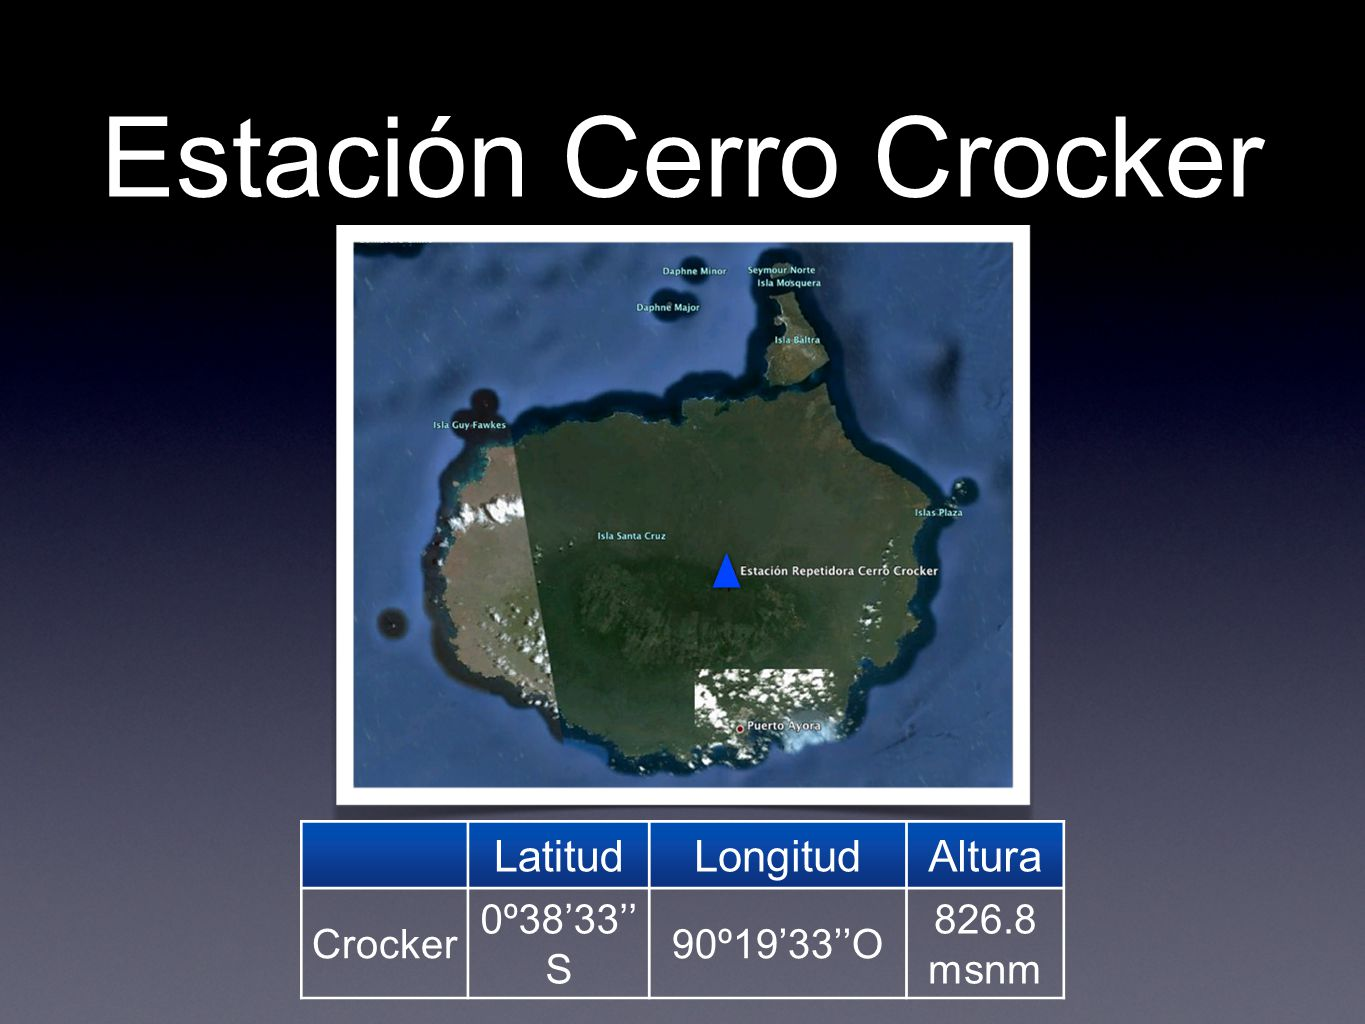 Estación Cerro Crocker